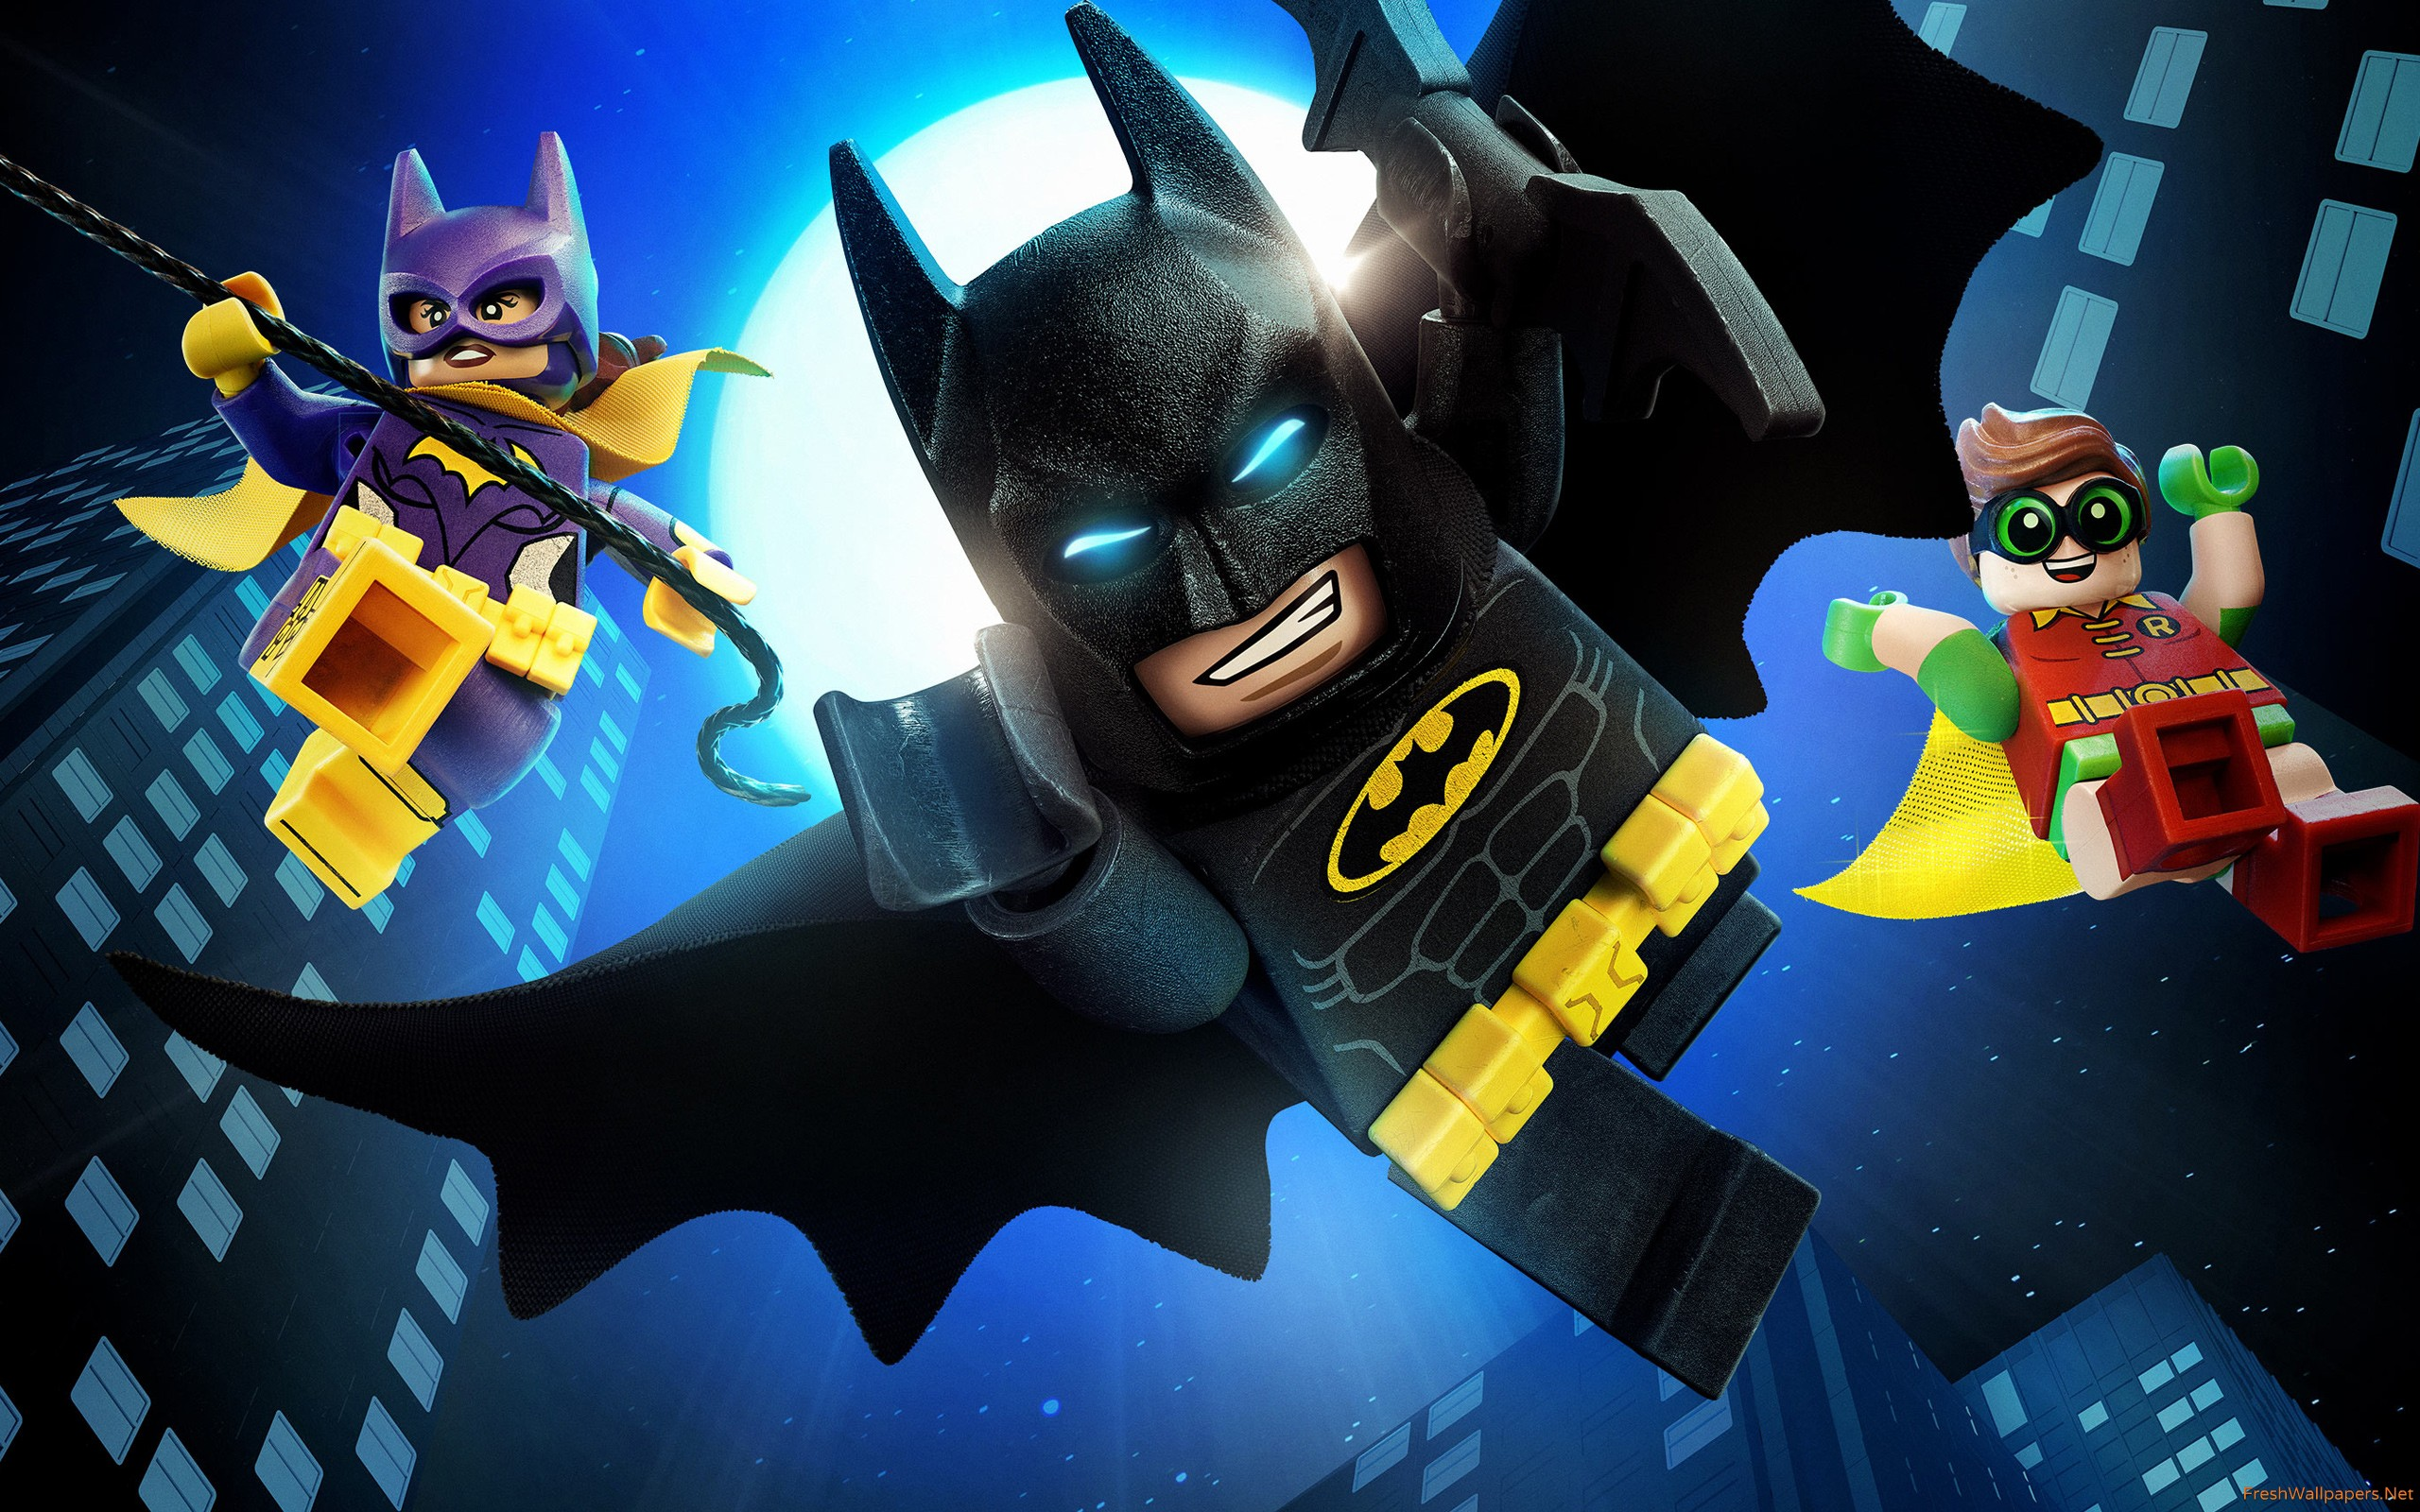 Batgirl, Batman and Robin in The Lego Batman Movie (2017)